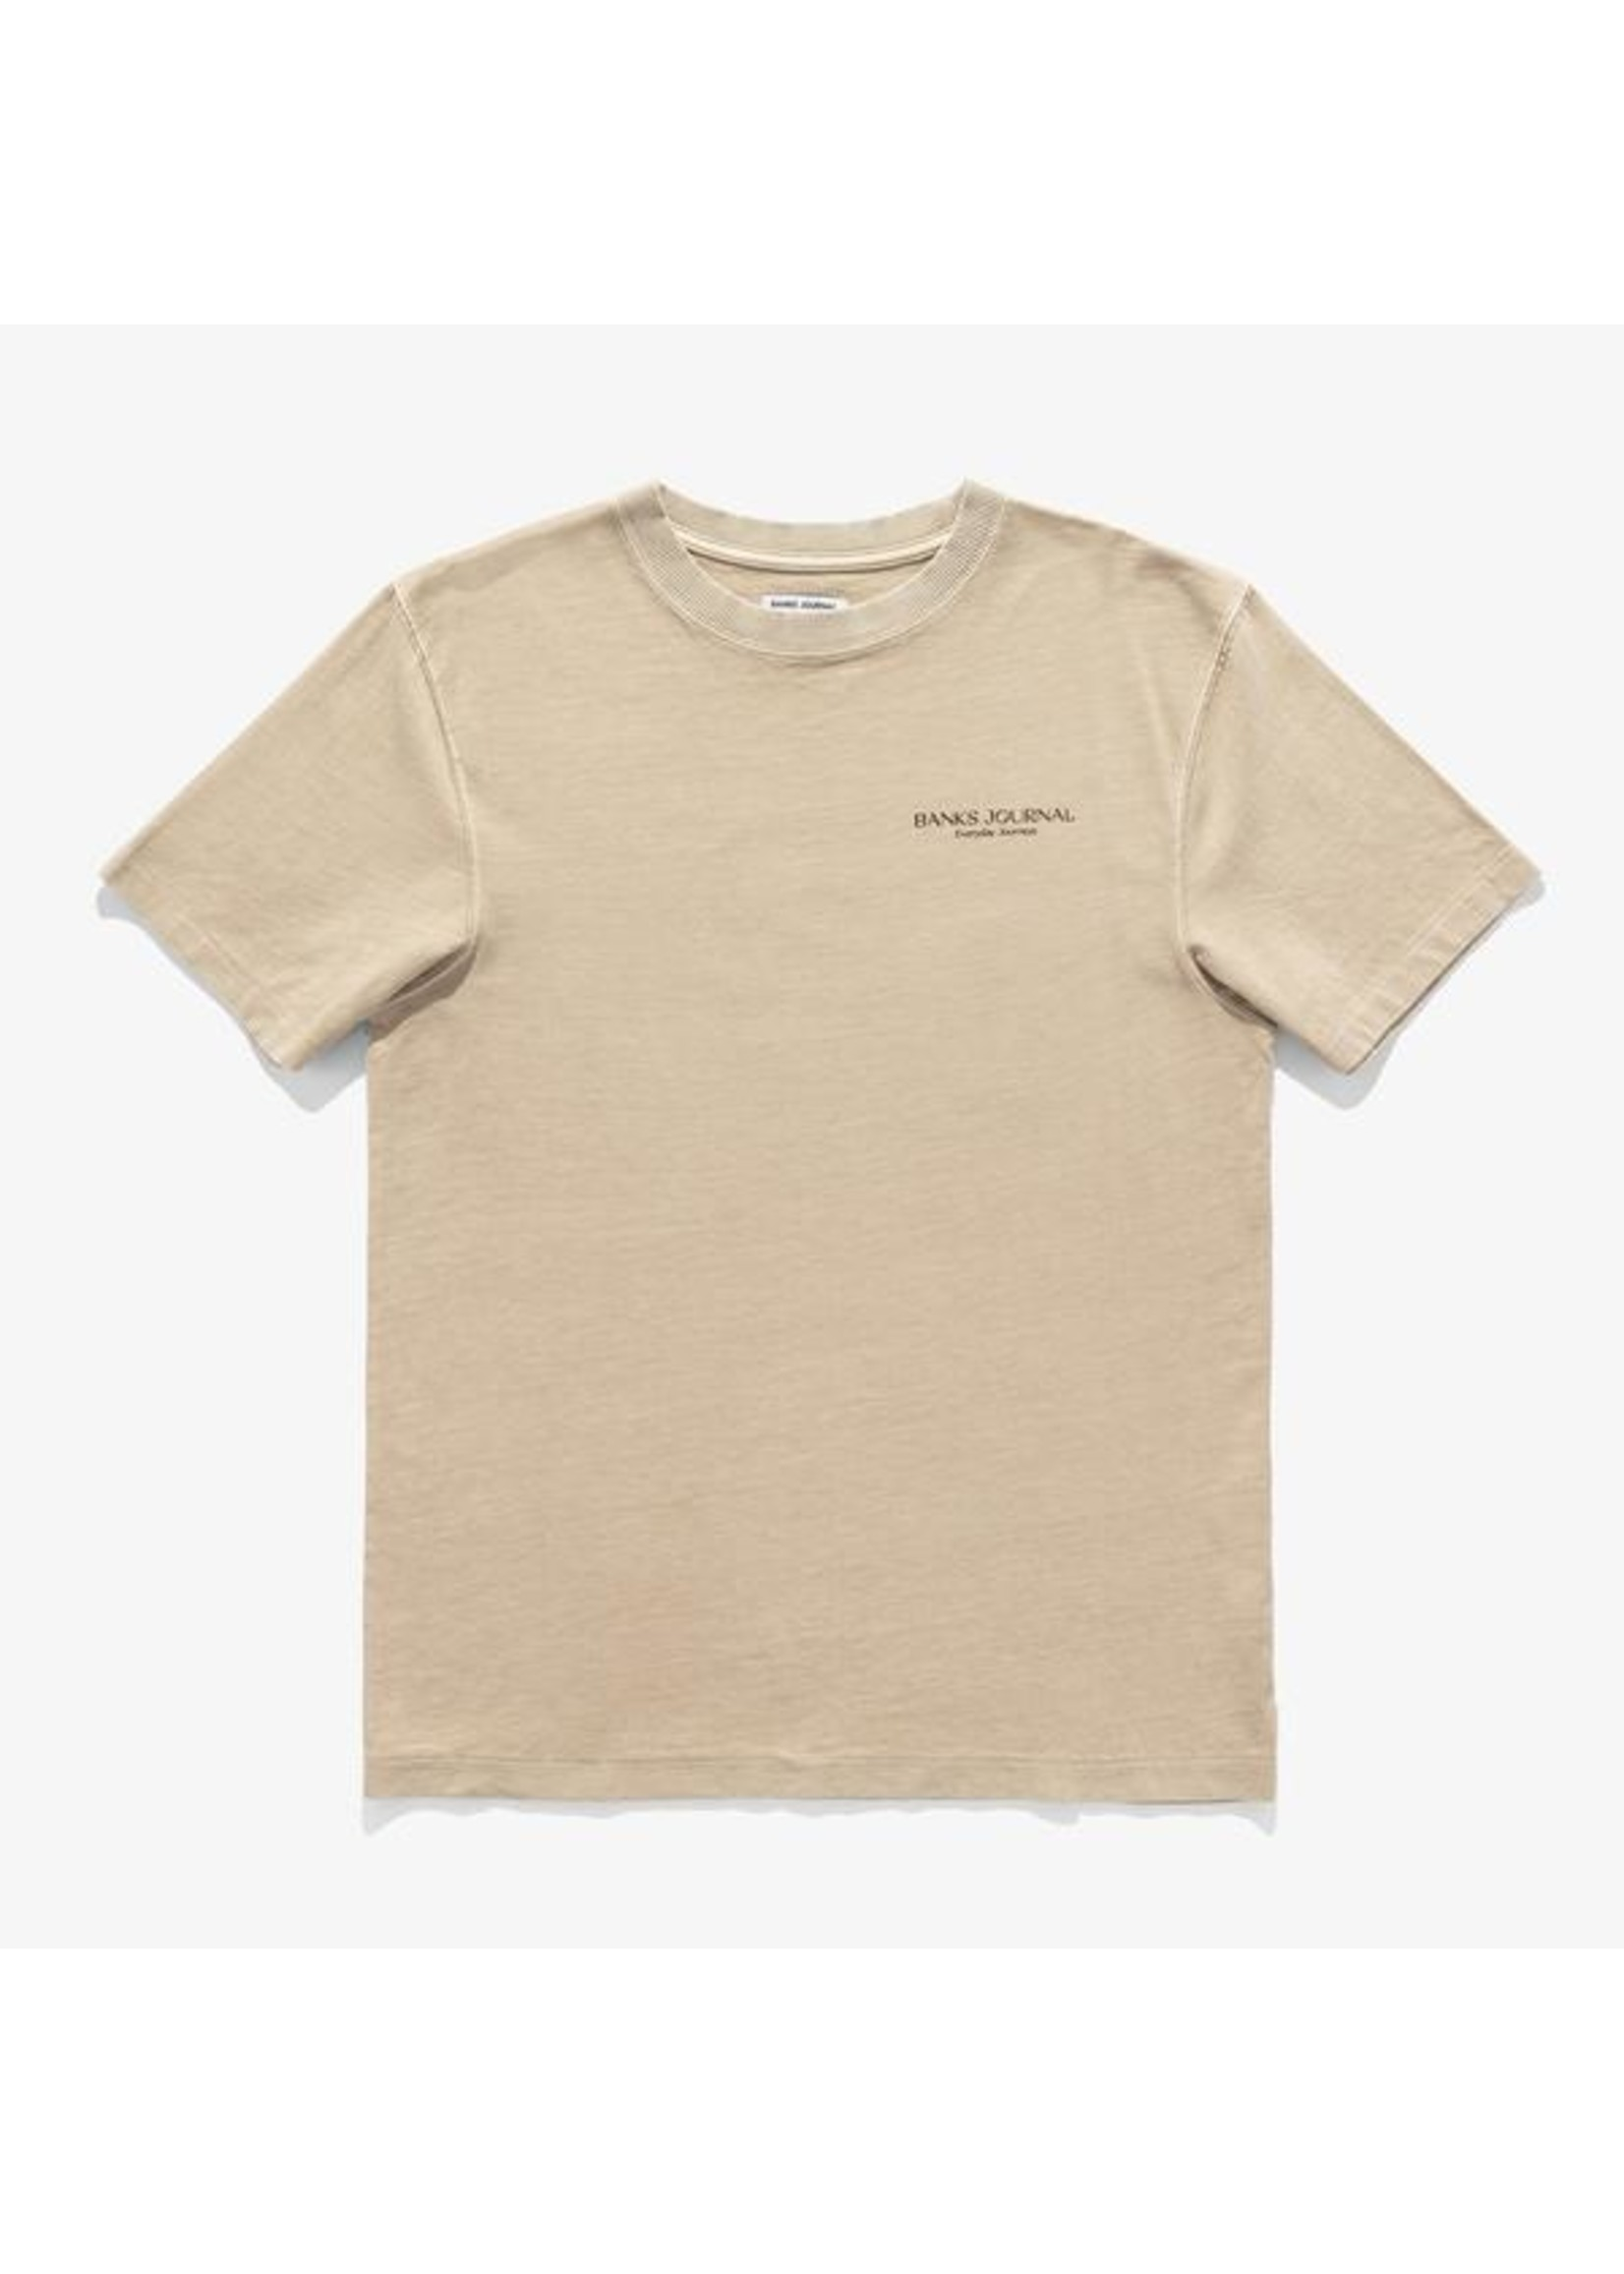 Banks Journal RAINBOW TRADER TEE